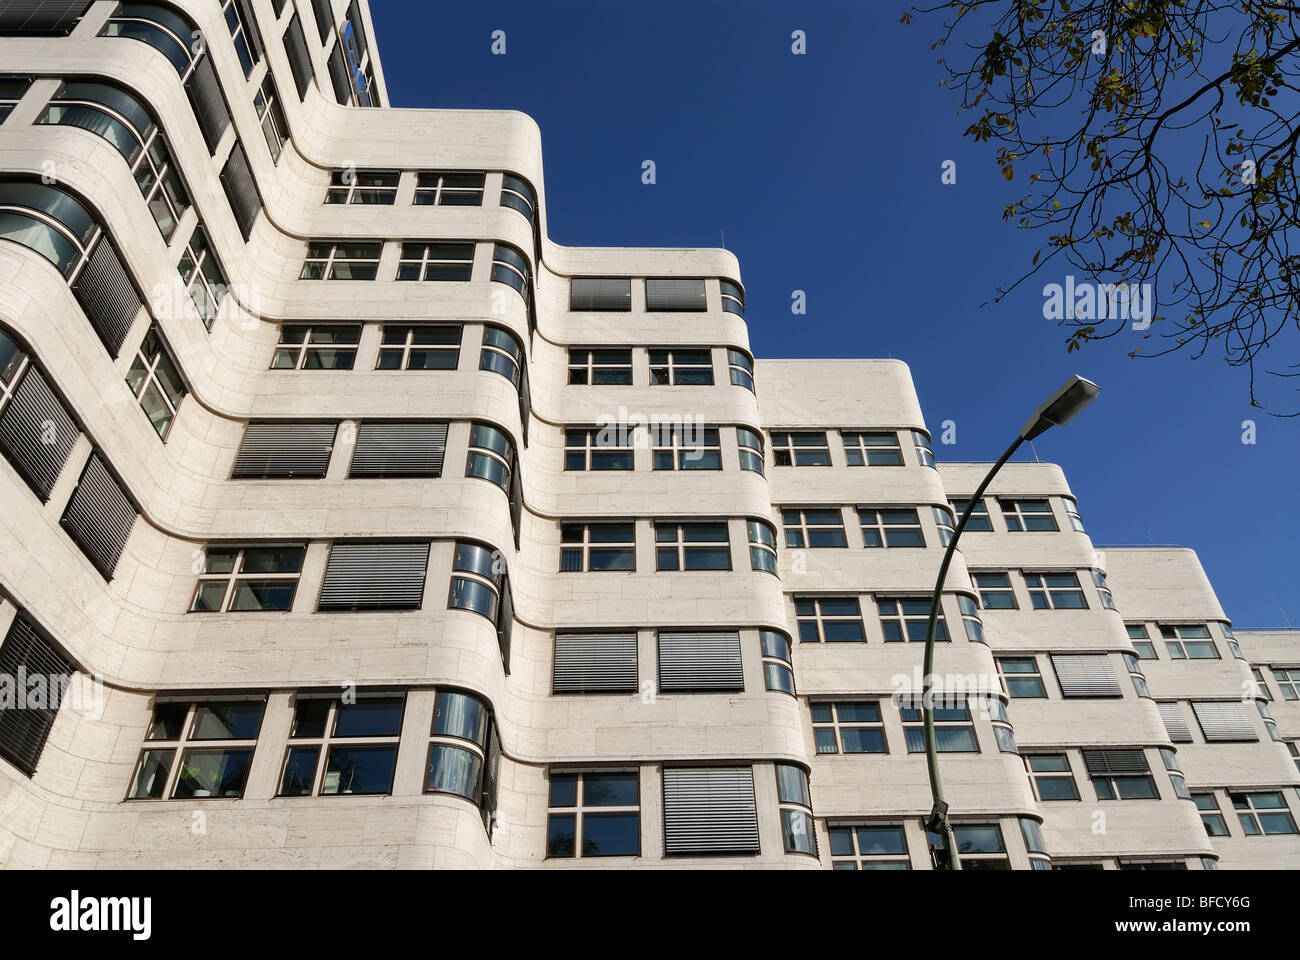 Berlin. Germany. Shell-Haus modernist architectural building 1932. Architect Emil Fahrenkamp. - Stock Image